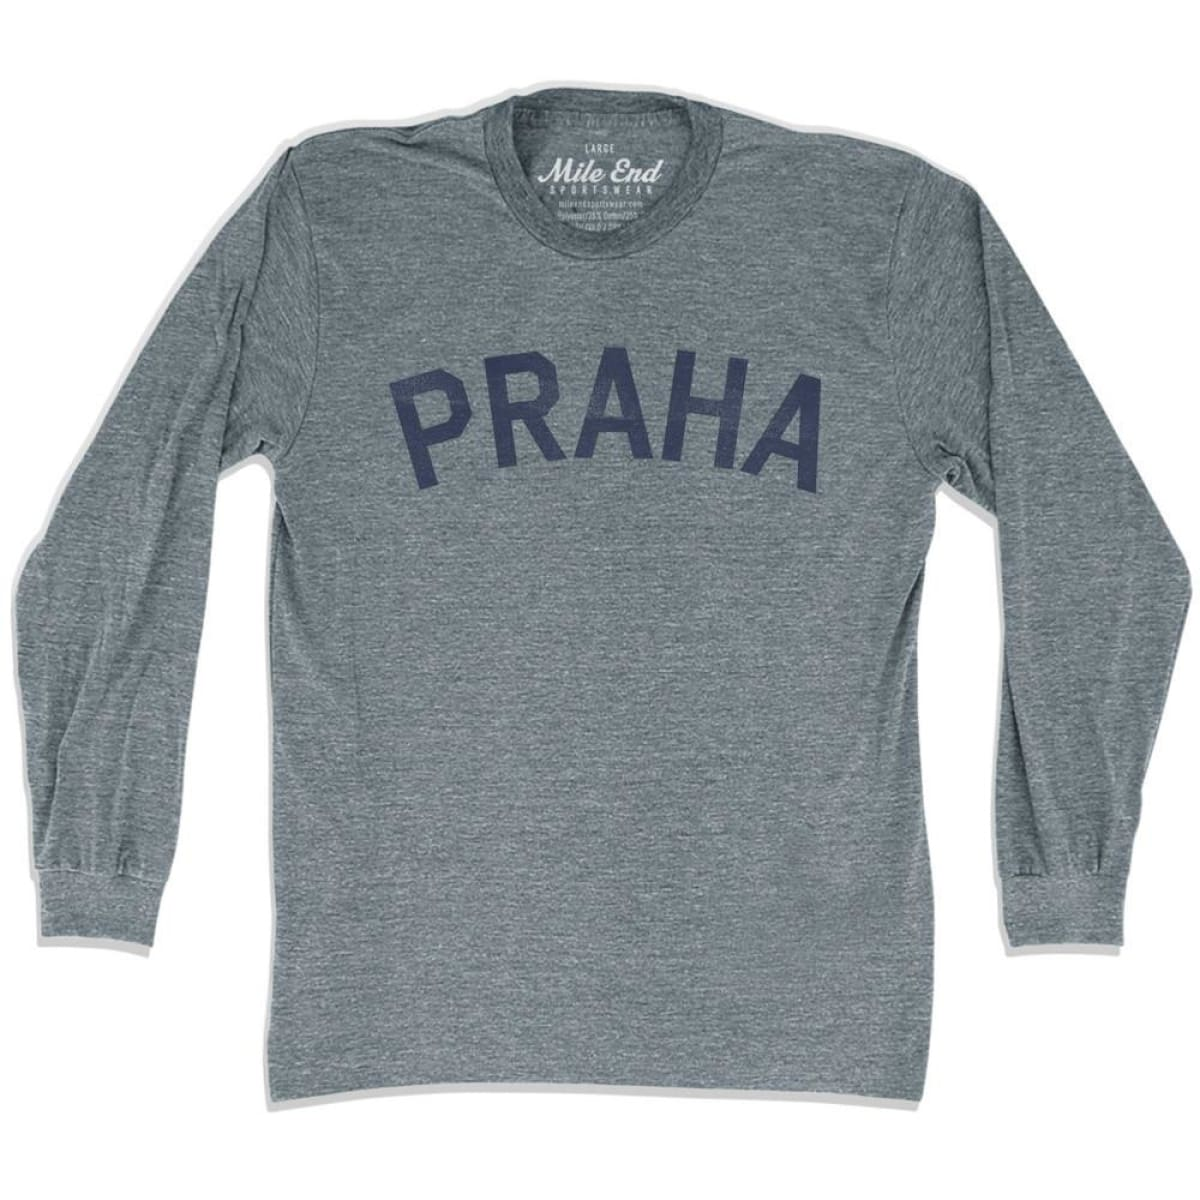 Praha City Vintage Long Sleeve T-Shirt - Athletic Grey / Adult X-Small - Mile End City